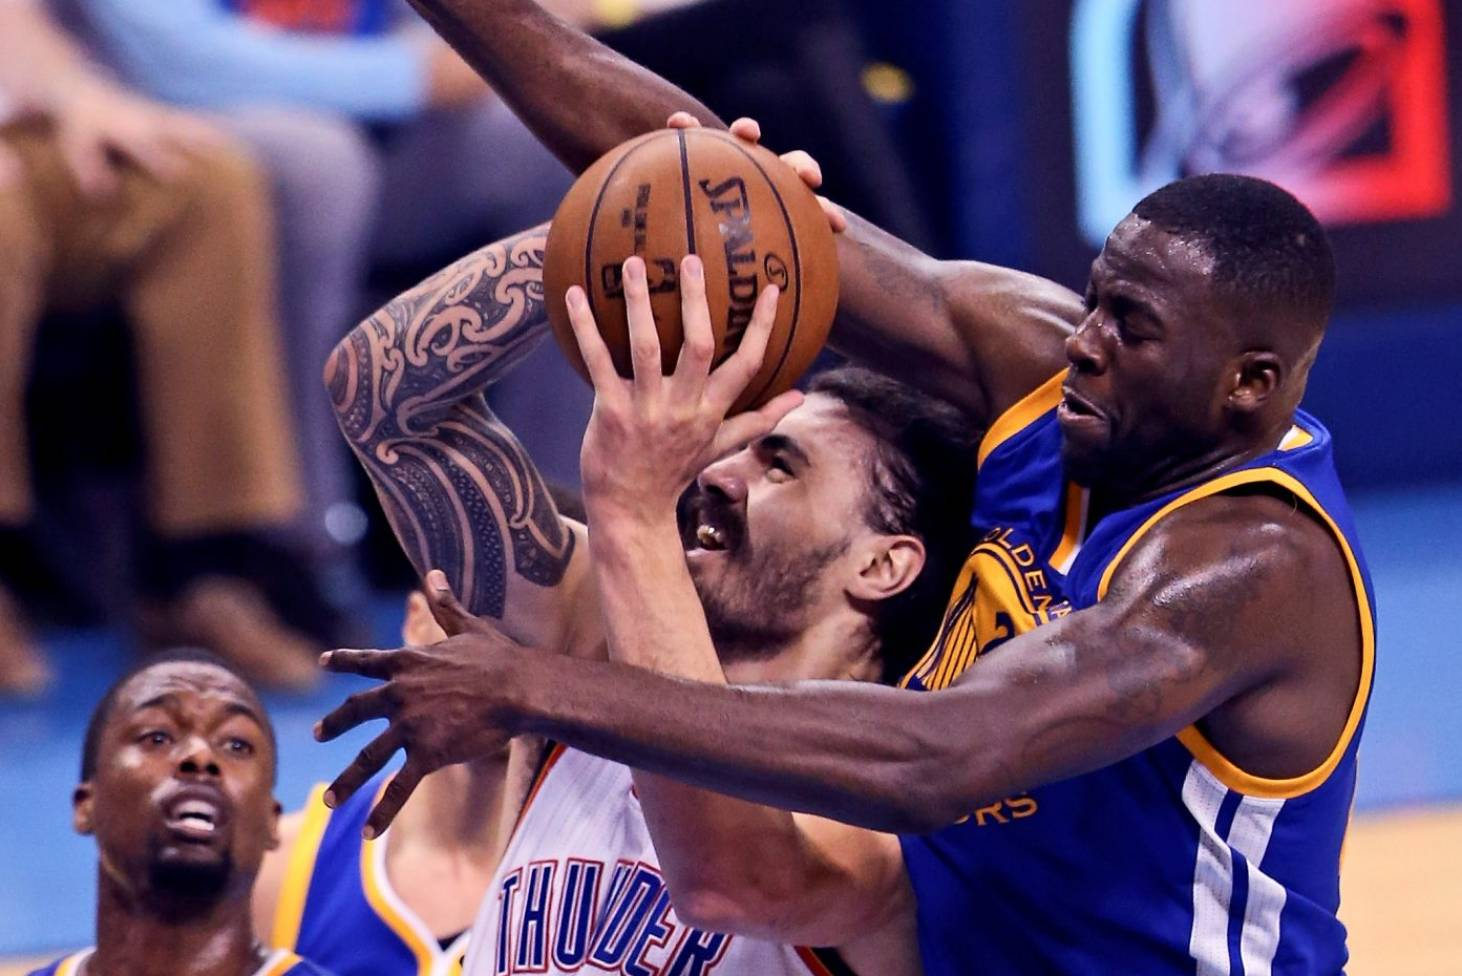 0cfb510b7c07 Steven Adams playing through pain barrier in OKC Thunder s post-season  charge